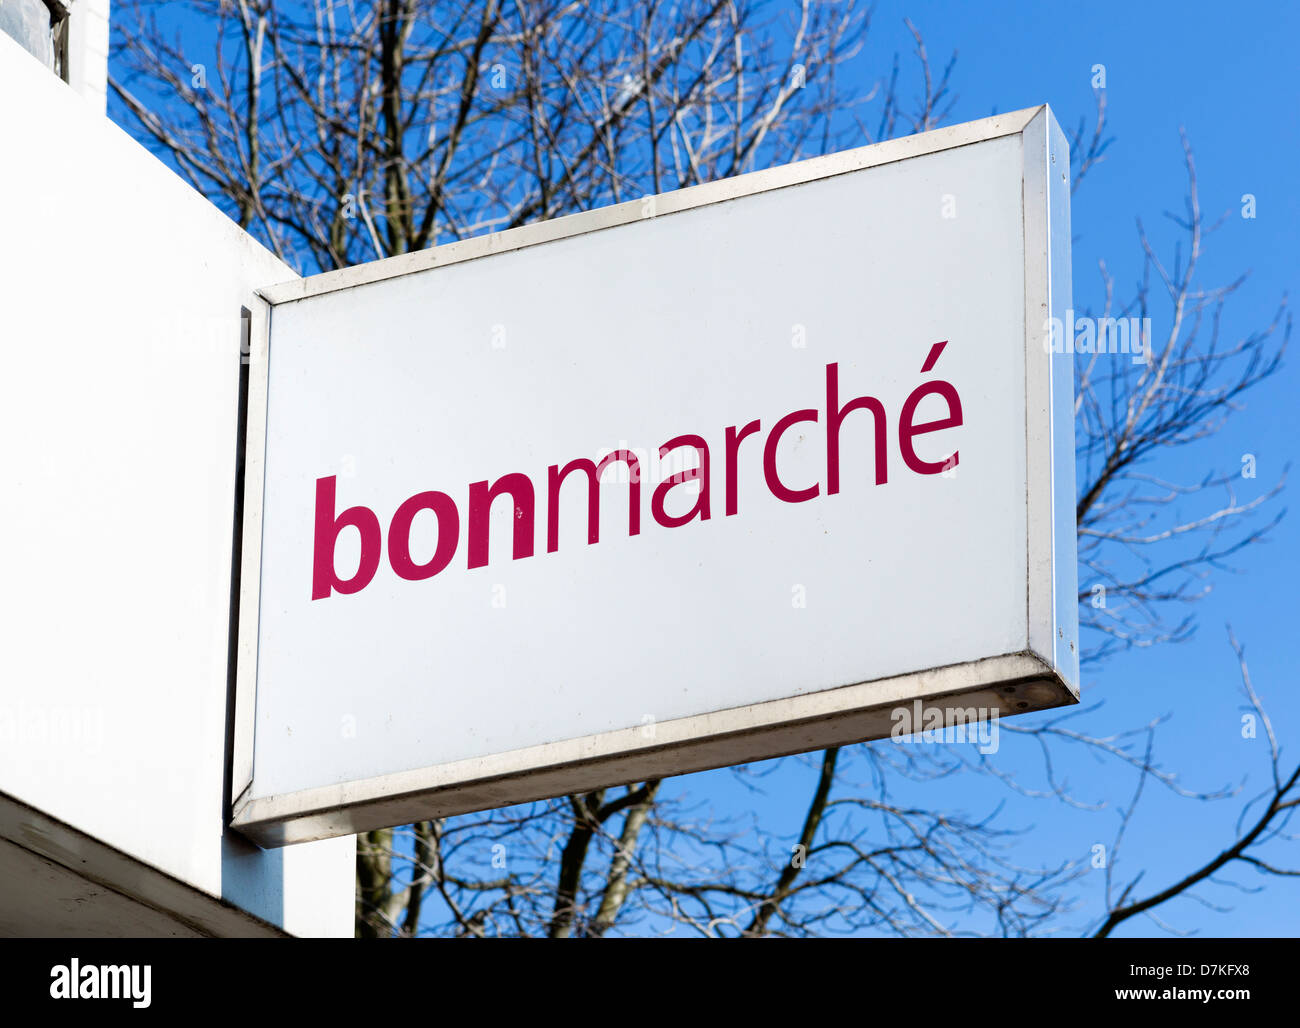 Bonmarche store in Doncaster, South Yorkshire, England, UK - Stock Image